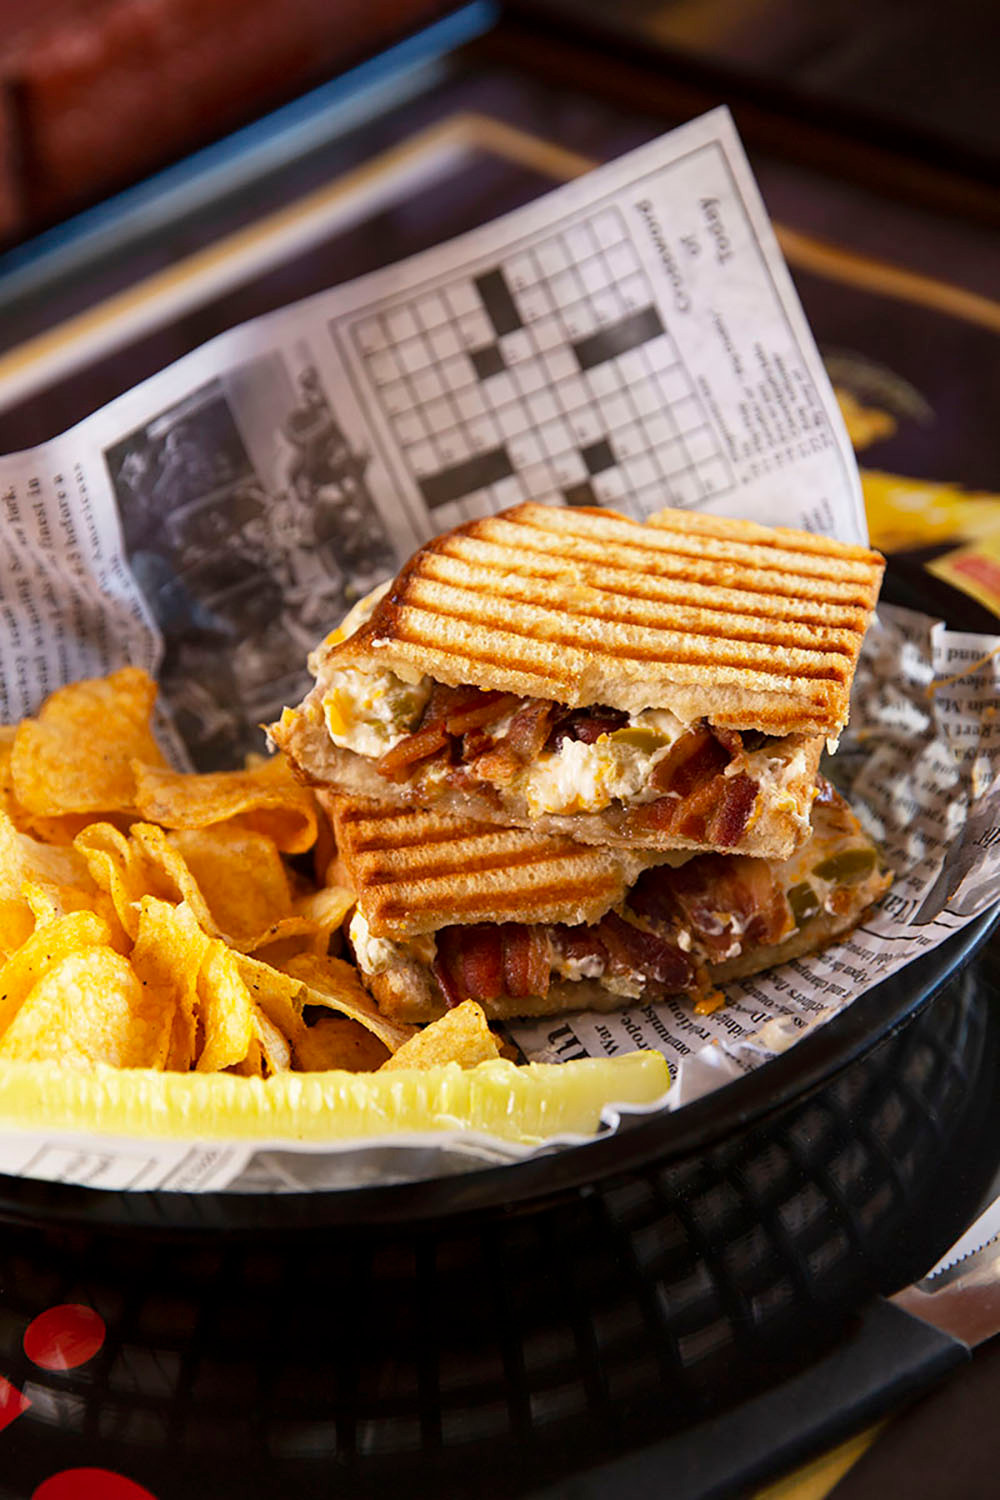 Cheesy sandwich with jalapenos and bacon cut in half with bar-b-que chips on a plate